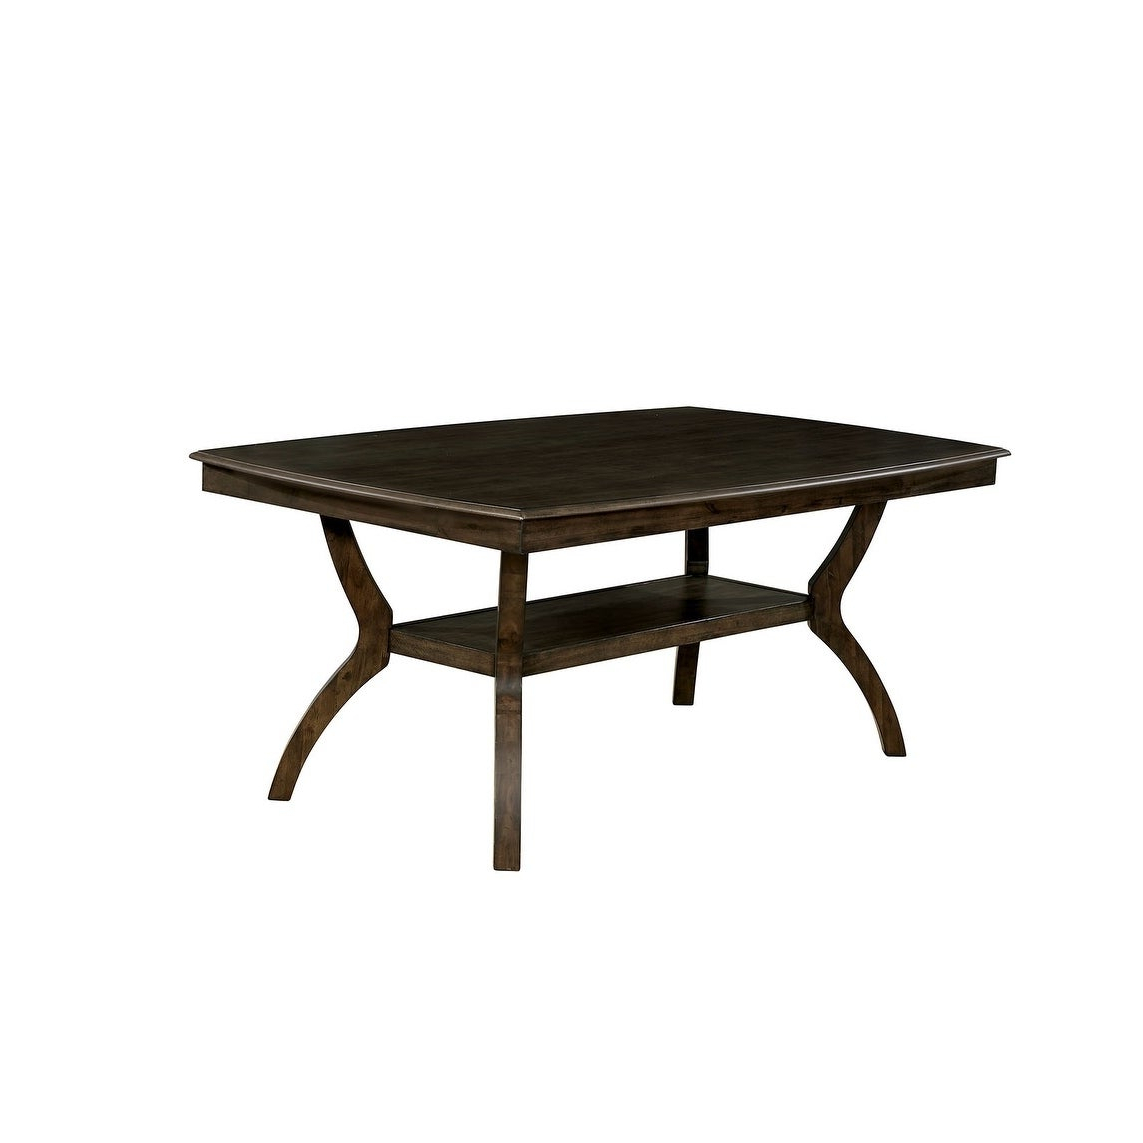 Transitional Style Solid Wood Rectangular Dining Table With Flowing Leg  Base Design , Brown With Most Current Transitional Rectangular Dining Tables (View 26 of 30)